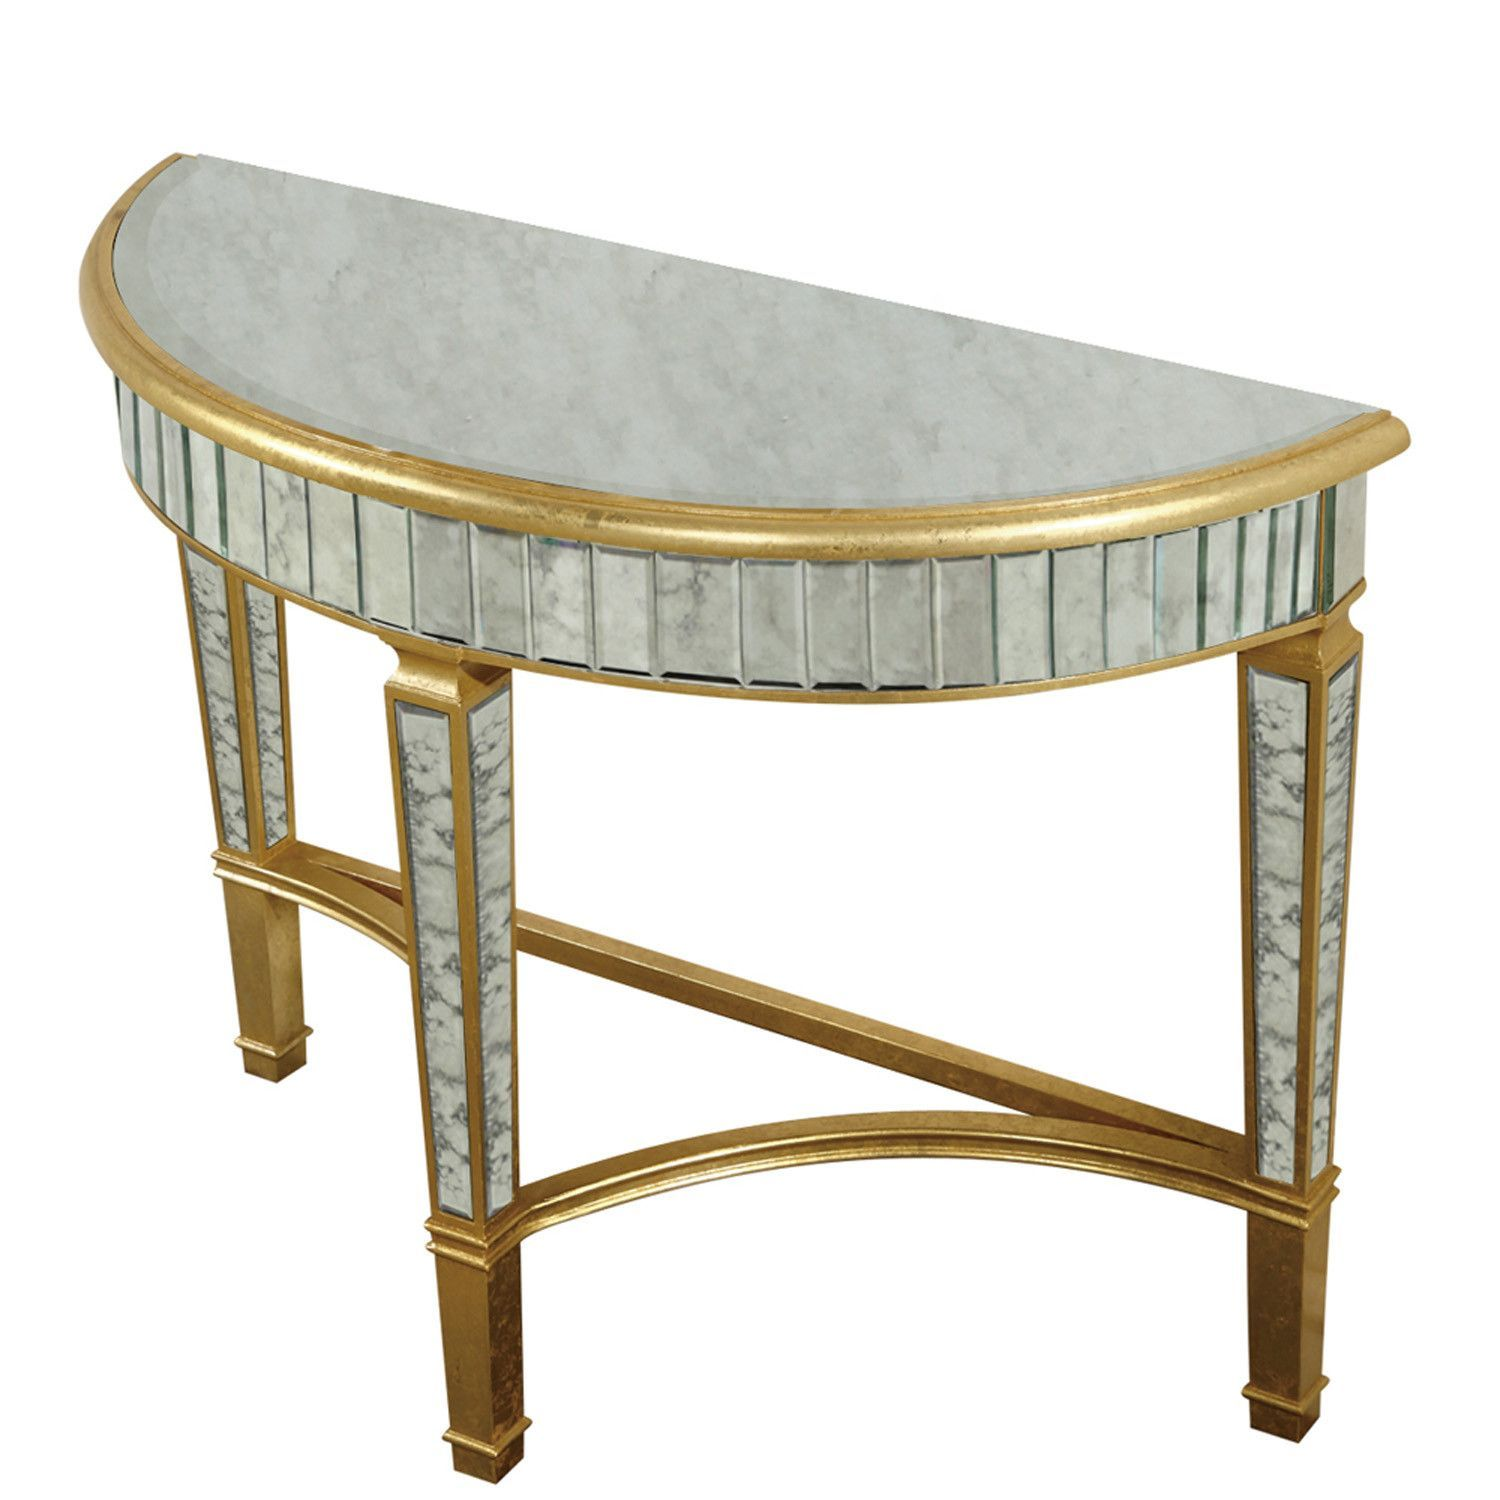 elegant lighting half moon table gold antique mirror enchanting accent pier one dining small with wheels home goods floor lamps magnussen glass coffee bathroom styles thin hallway